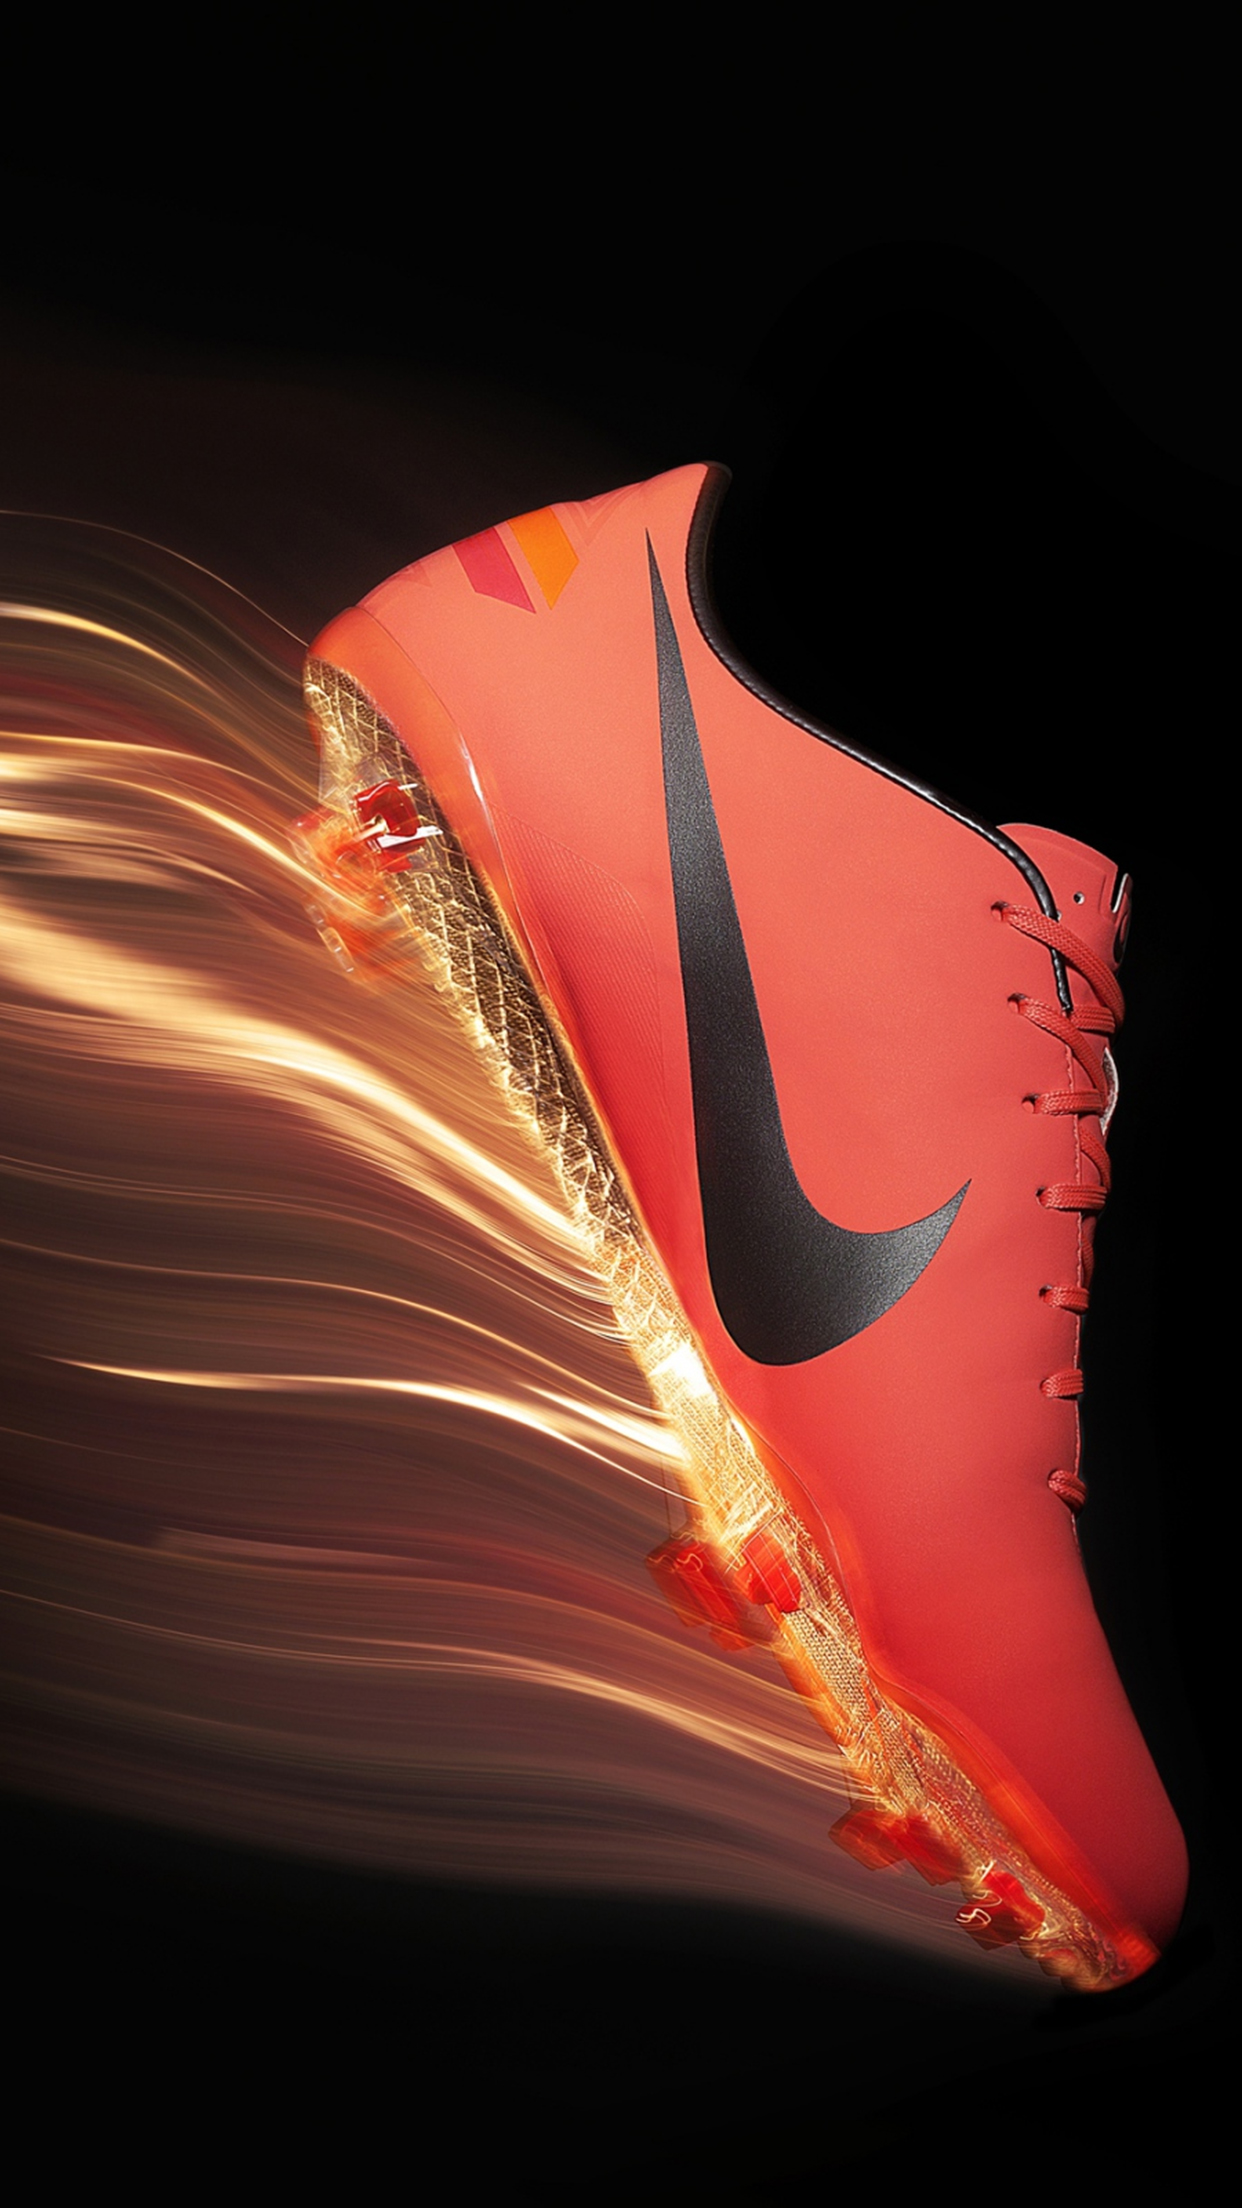 Football Mercurial boots 3Wallpapers iPhone Parallax Football: Mercurial boots